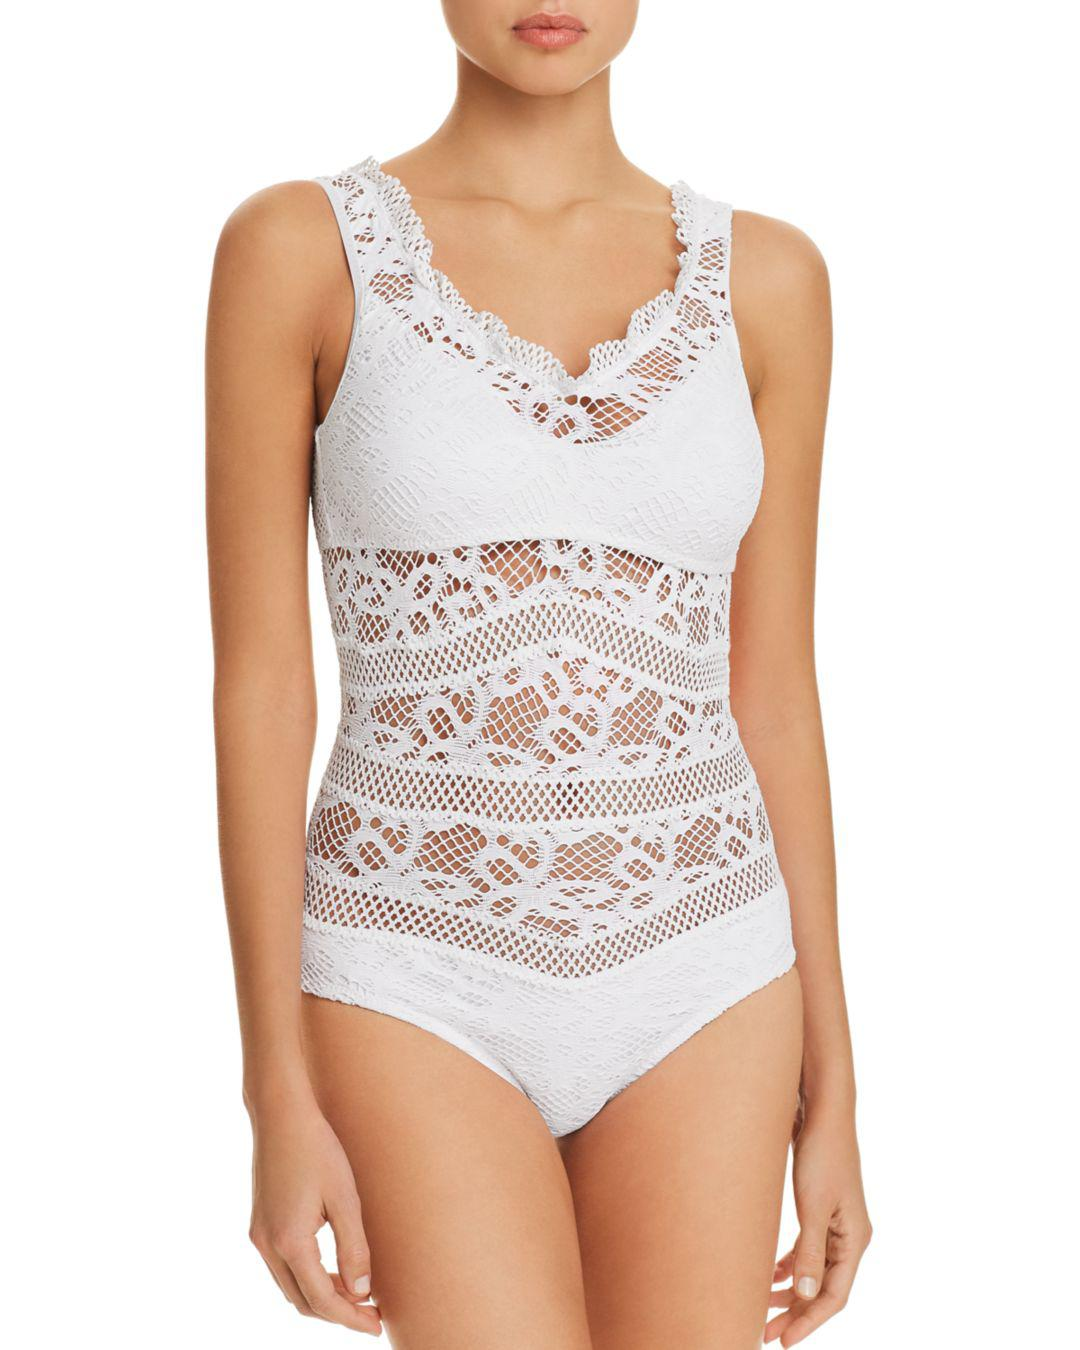 143dea9273e56 Becca Captured Crochet One Piece Swimsuit in White - Lyst